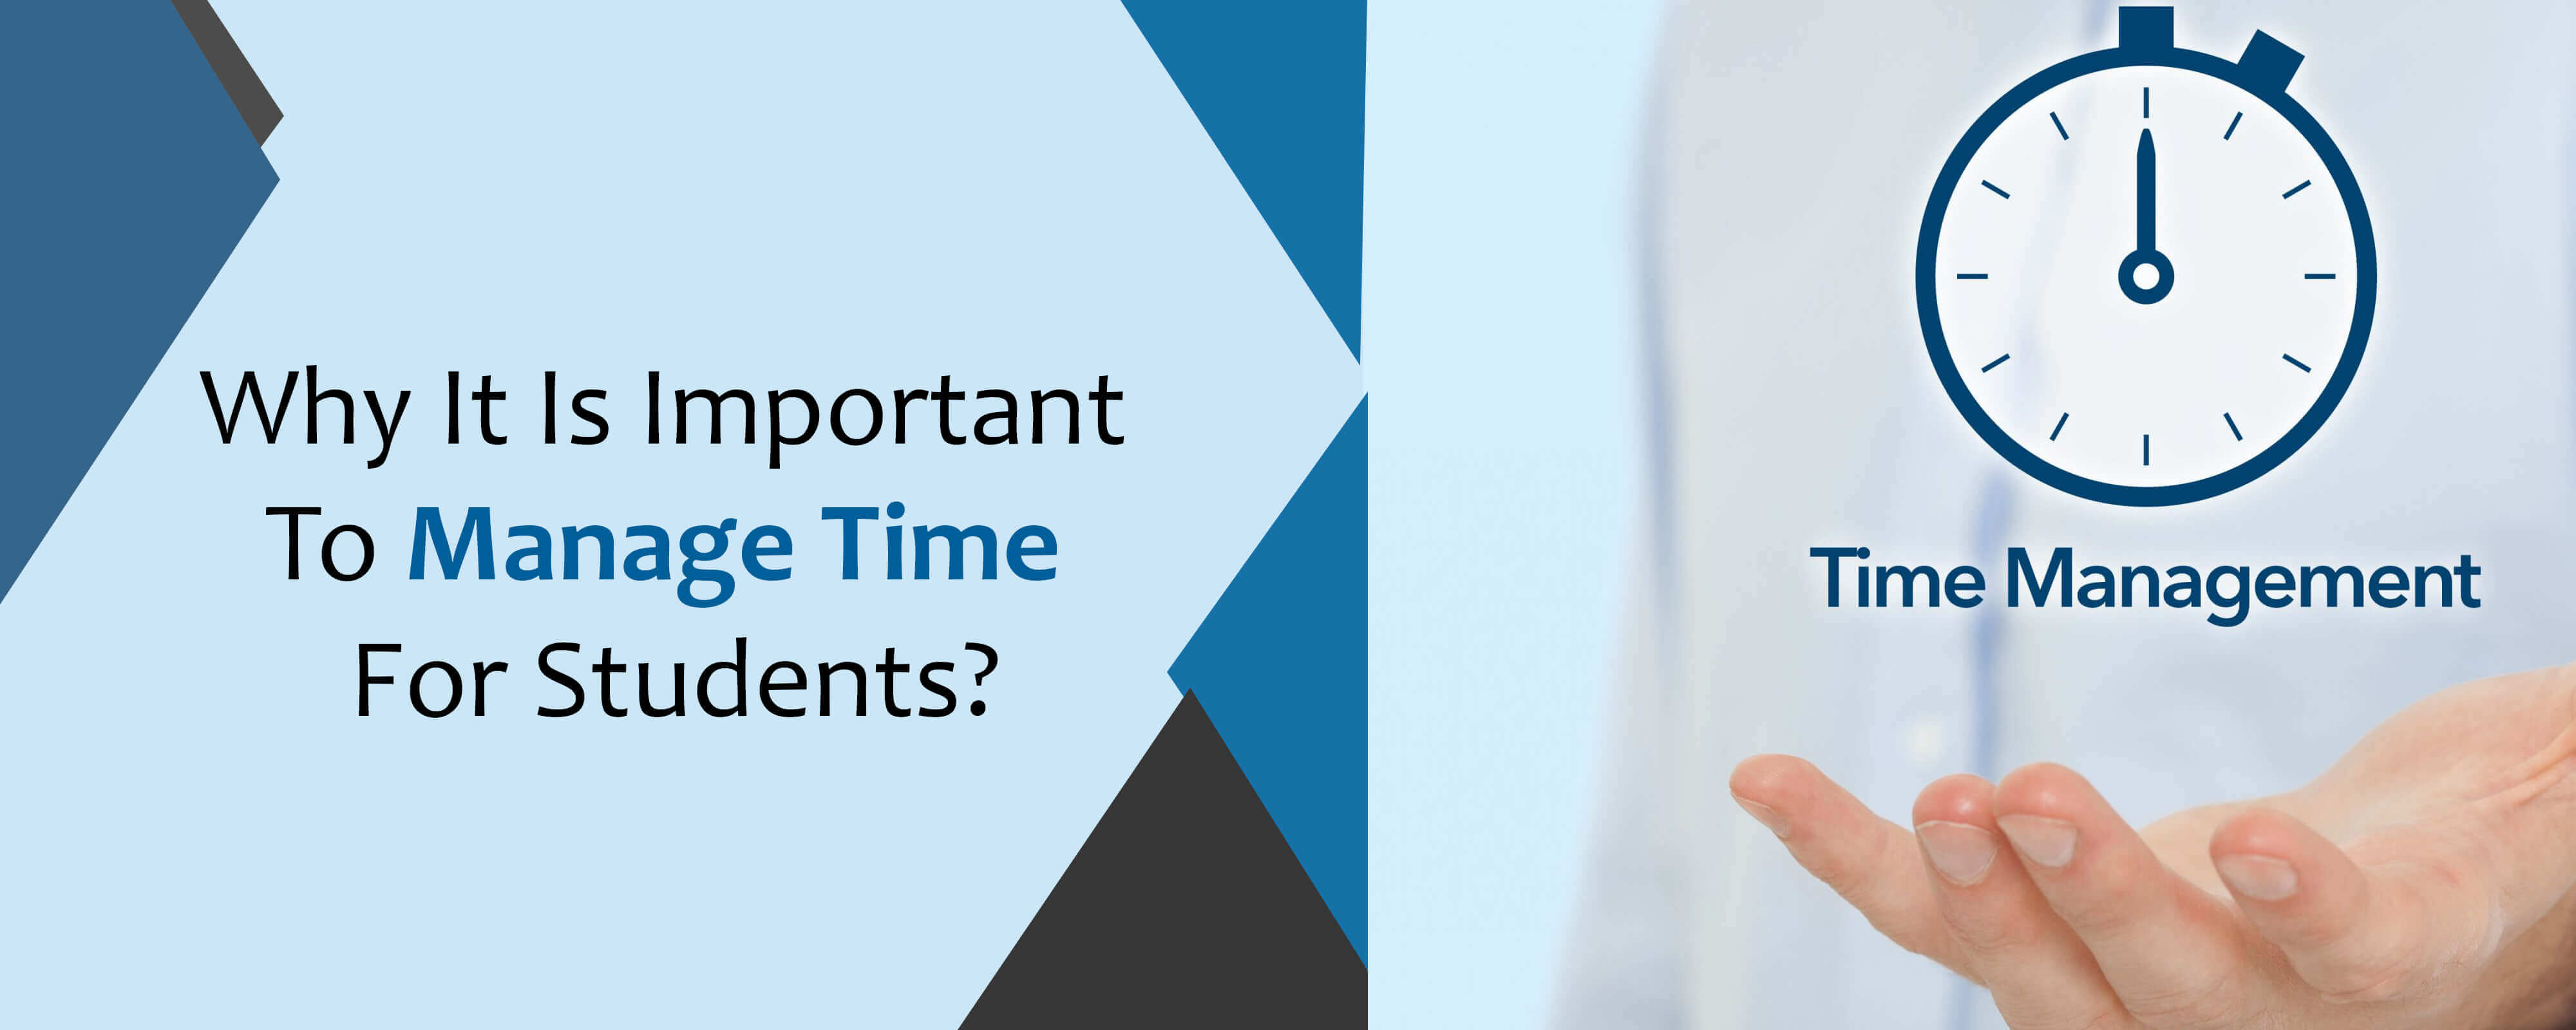 Why It Is Important To Manage Time For Students, Dissertation Help